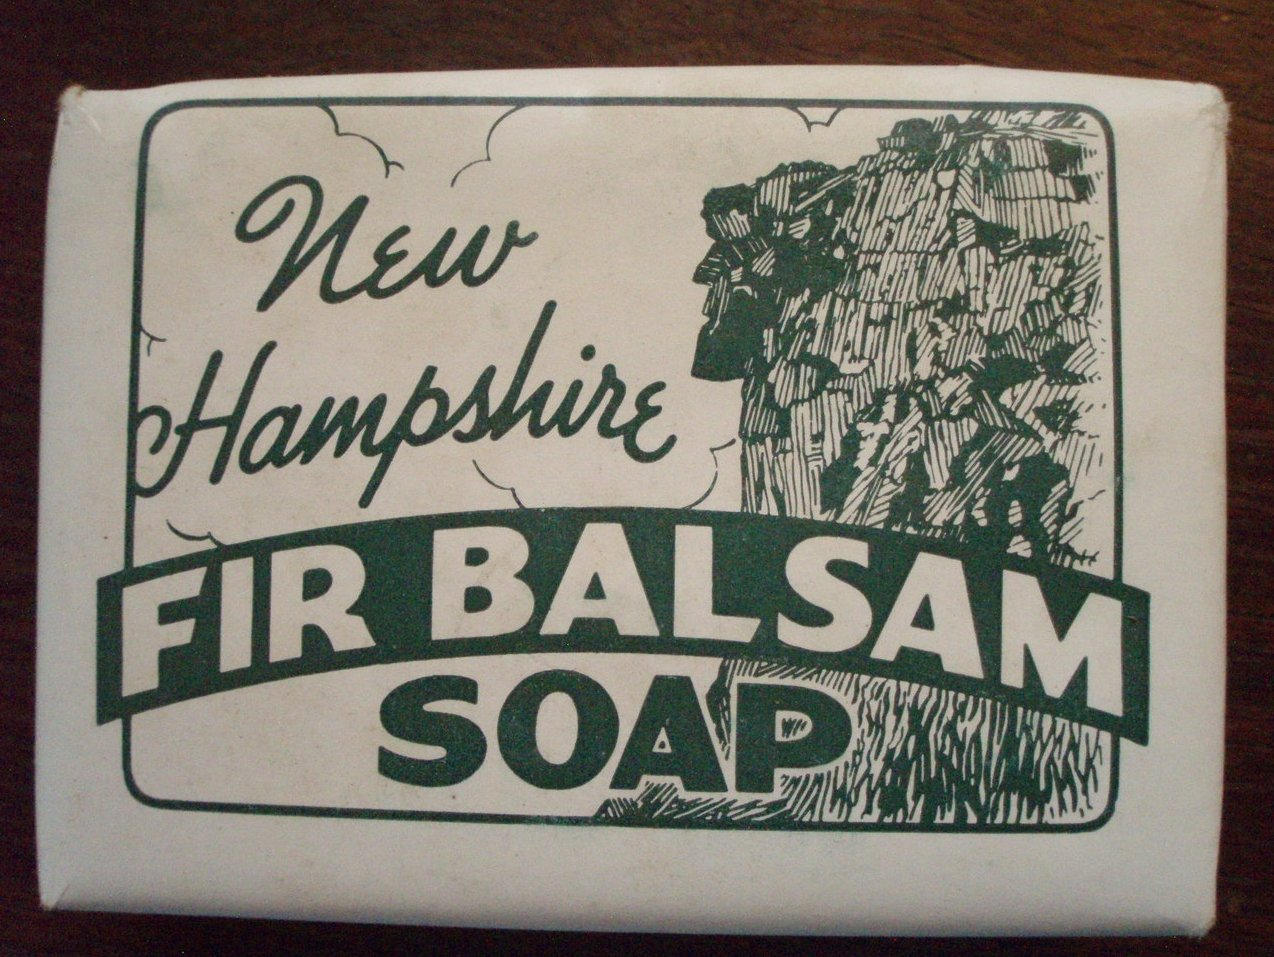 NH Fir Balsam Soap Old Man of Mountains Advertise vintage